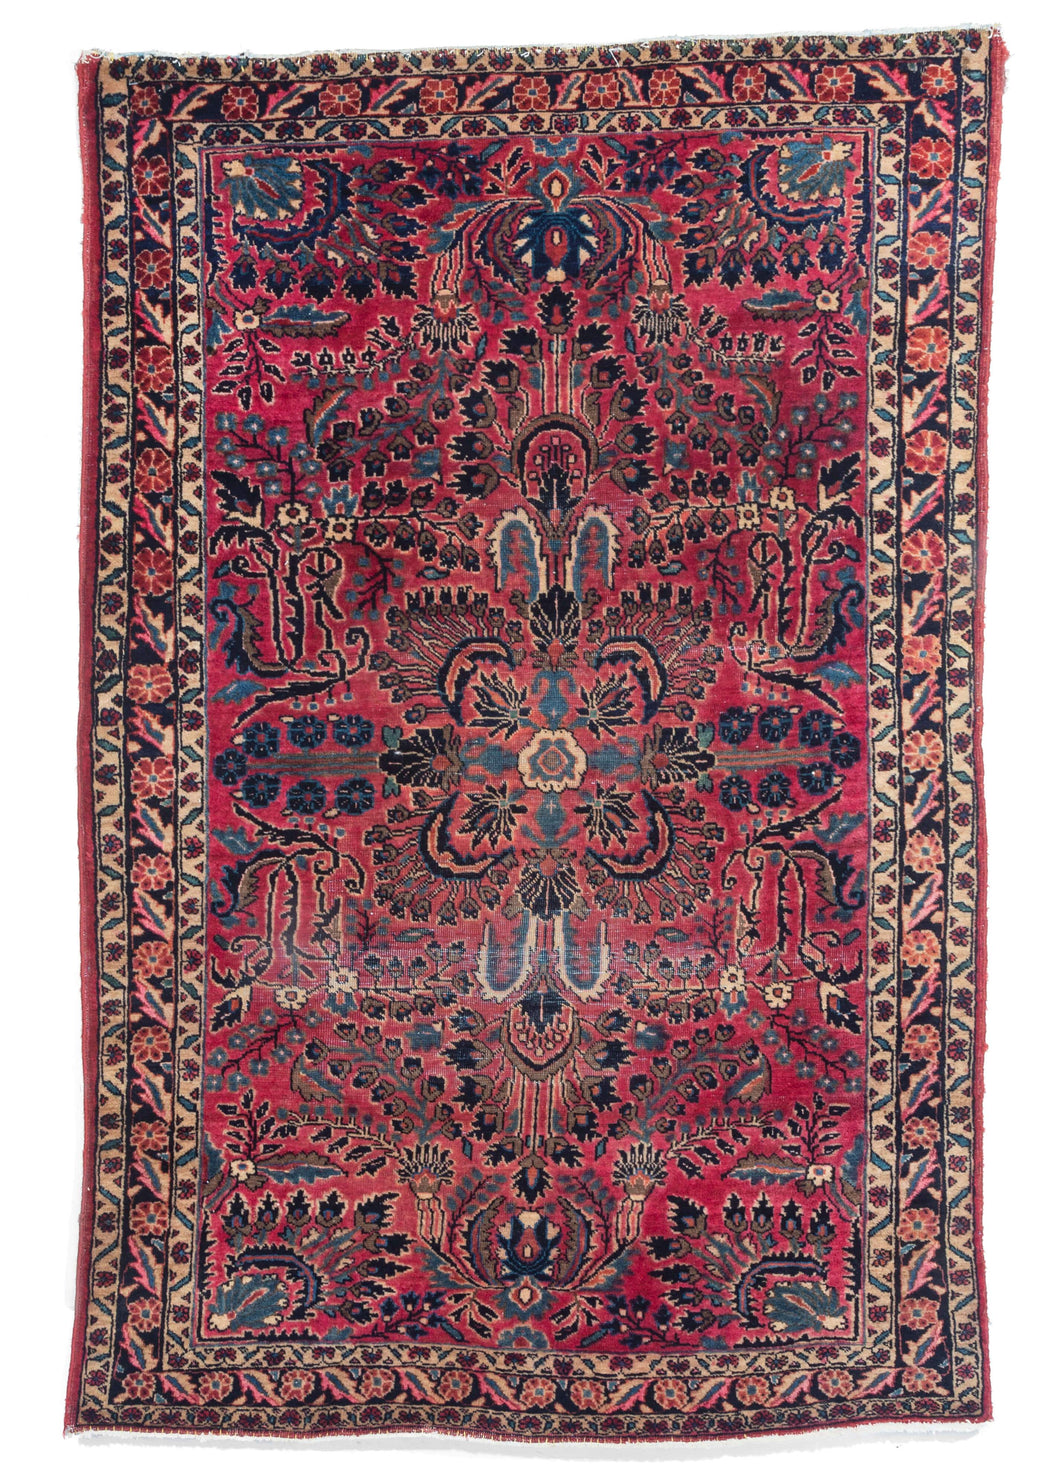 West Persian handwoven wool Sarouk rug with central medallion and pink field characteristic of Sarouk and Lillian rugs